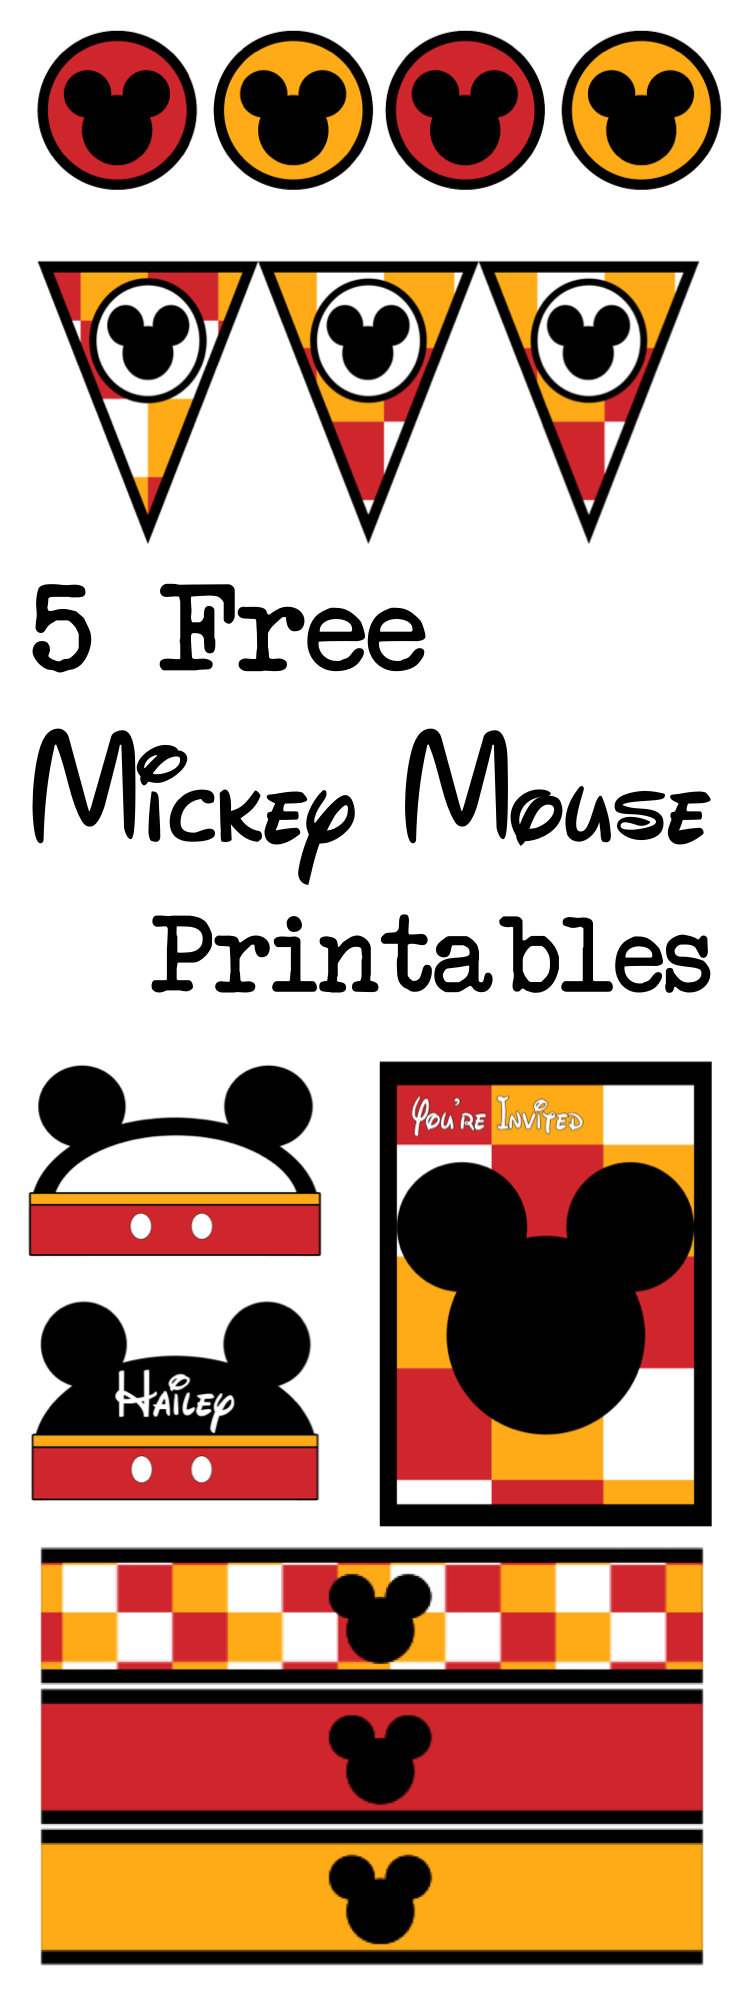 image regarding Give Me Five Poster Printable Free called 5 Mickey Mouse Cost-free Printables - Paper Path Style and design